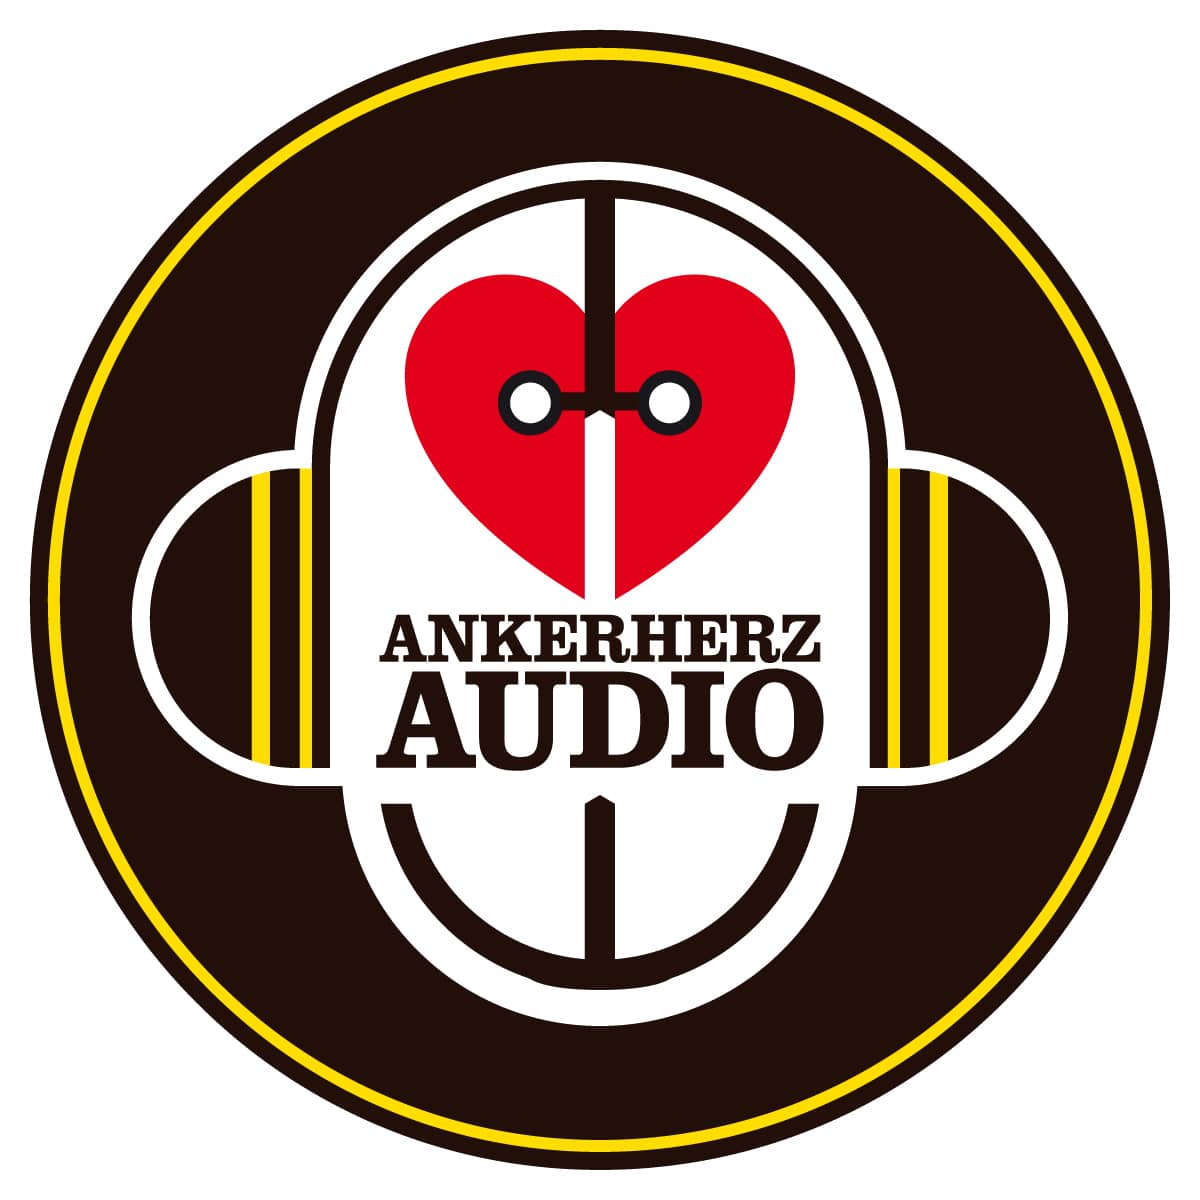 Ankerherz Audio Logo - gezeichnet von Jerzovskaja (Vector illustration drawn with Adobe Illustrator)